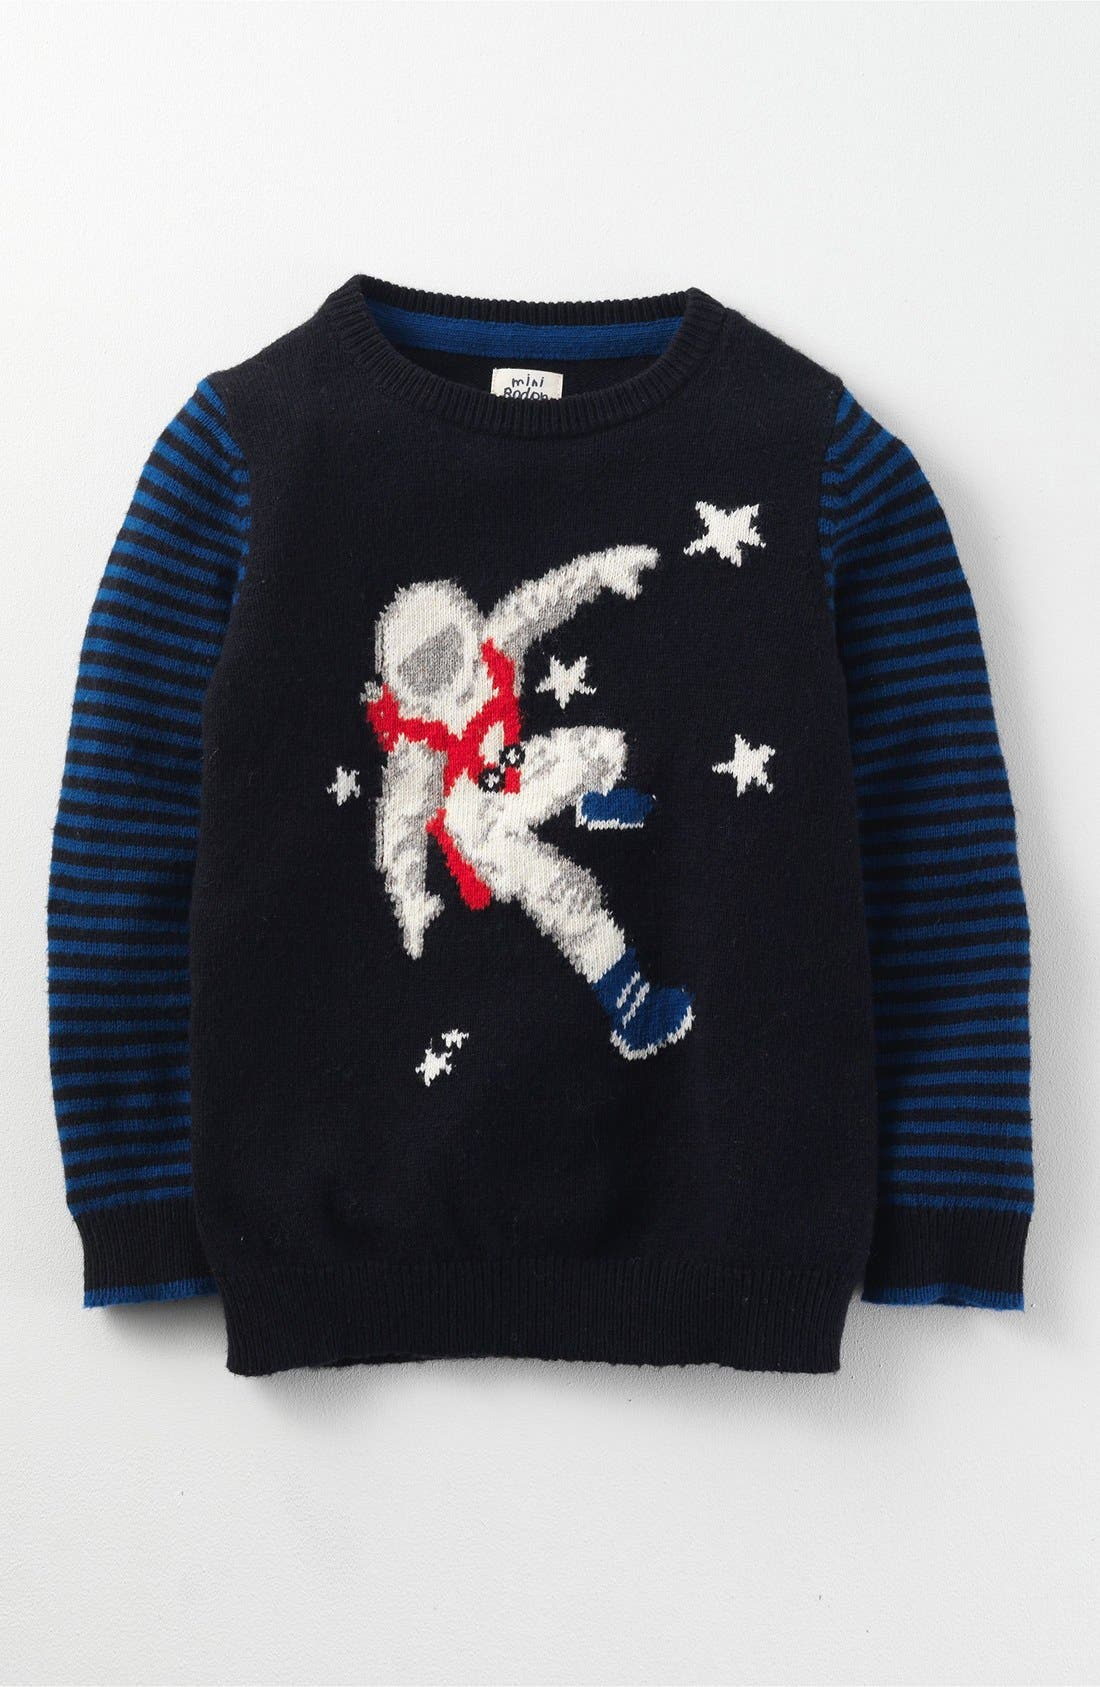 MINI BODEN,                             Space Sweater,                             Main thumbnail 1, color,                             054